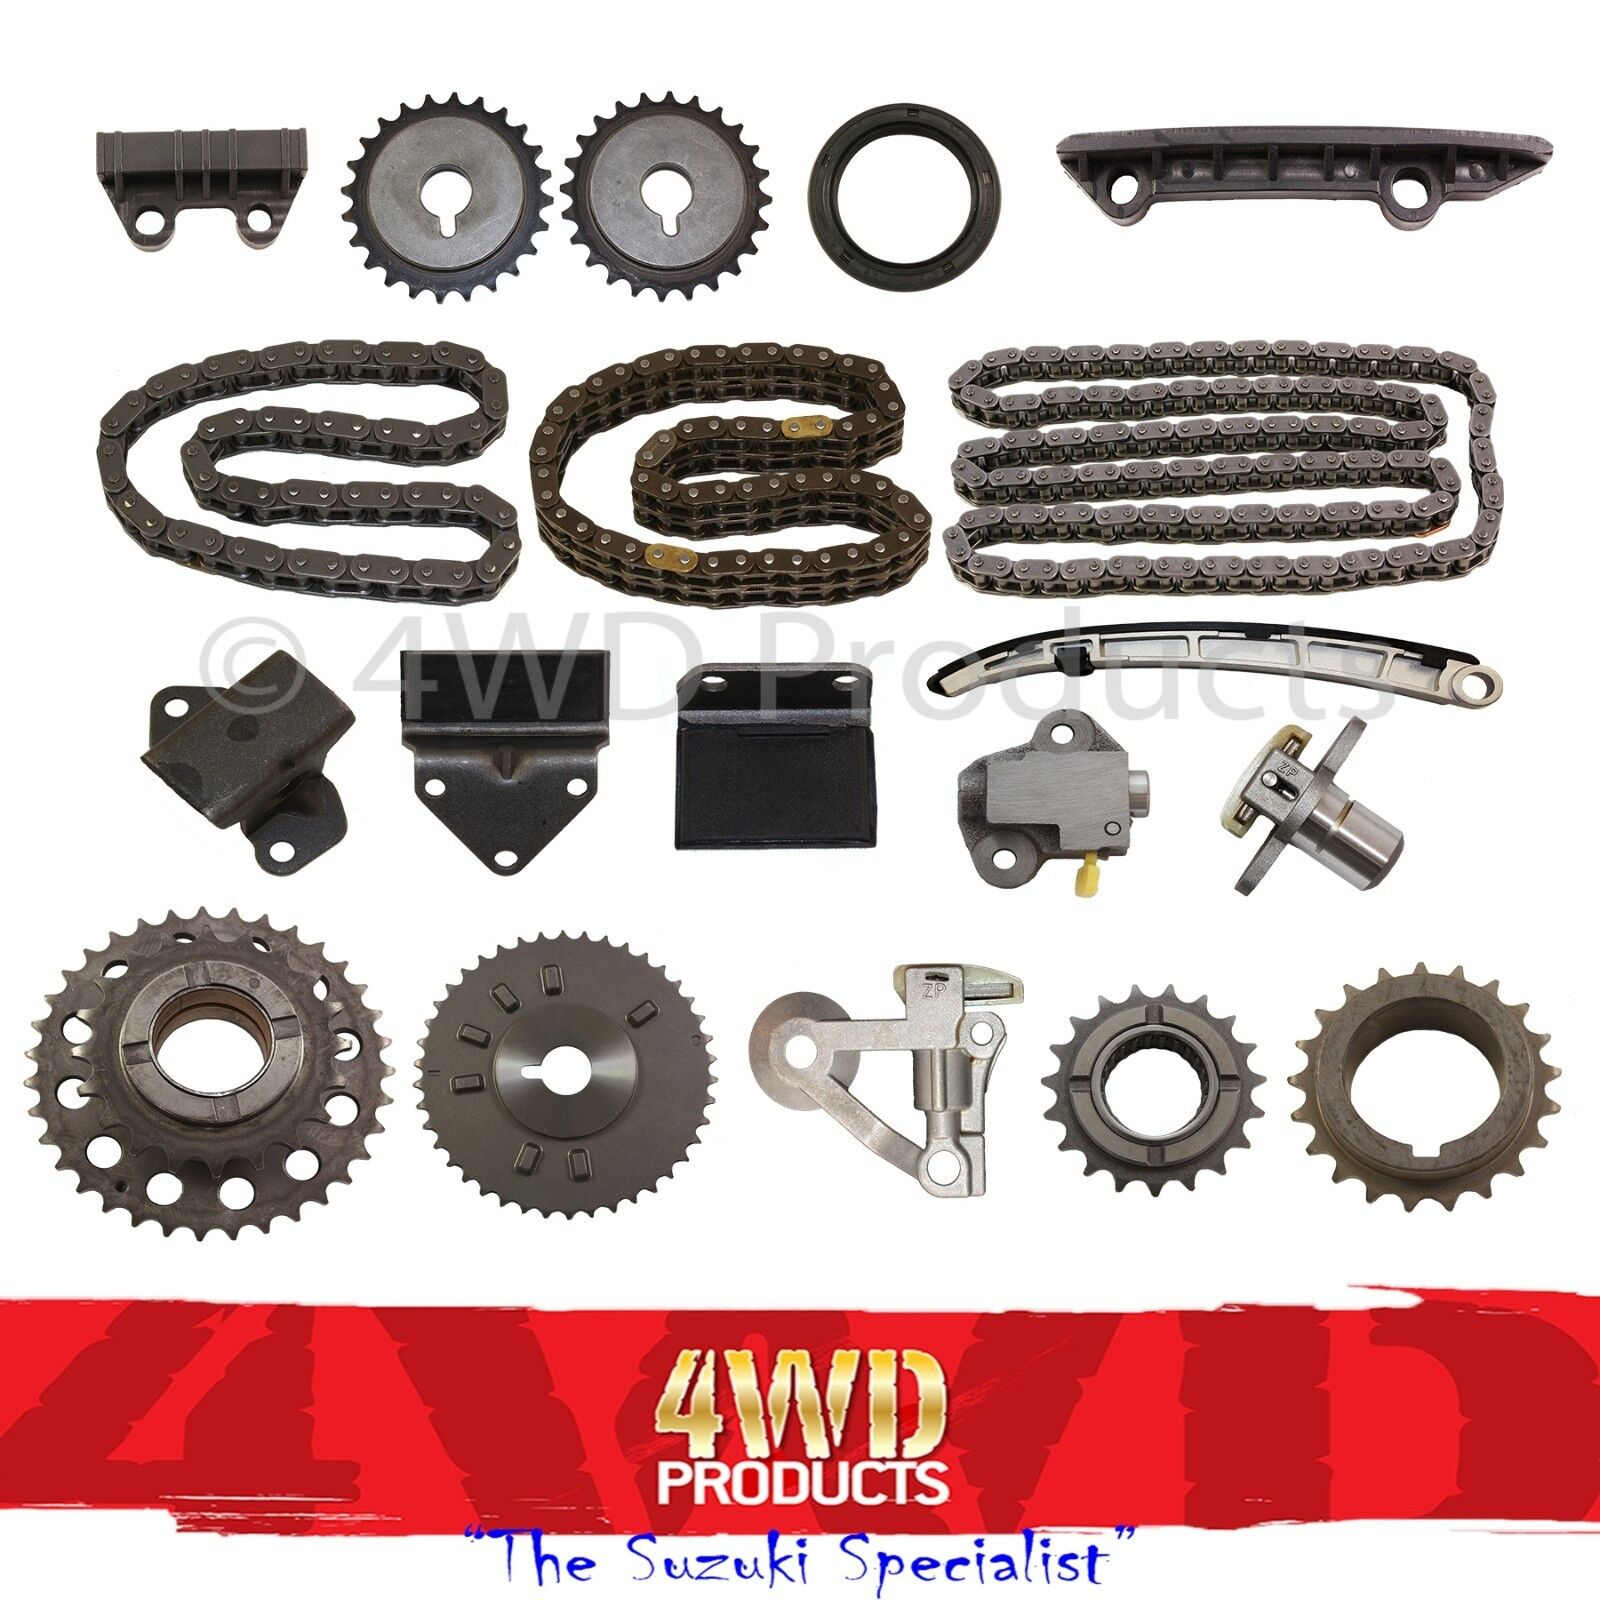 Original as well Suzuki Xl Timing Chain Replacement Image Details Suzuki Timing Chain Replacement L B D B besides Timing Marks Bad Cecf B E Ecba B F B B A E together with Original also Timing Chain Serpentine Belt Diagrams Does Anybody Have Timing Chain Diagram S C B C E. on suzuki grand vitara timing chain replacement